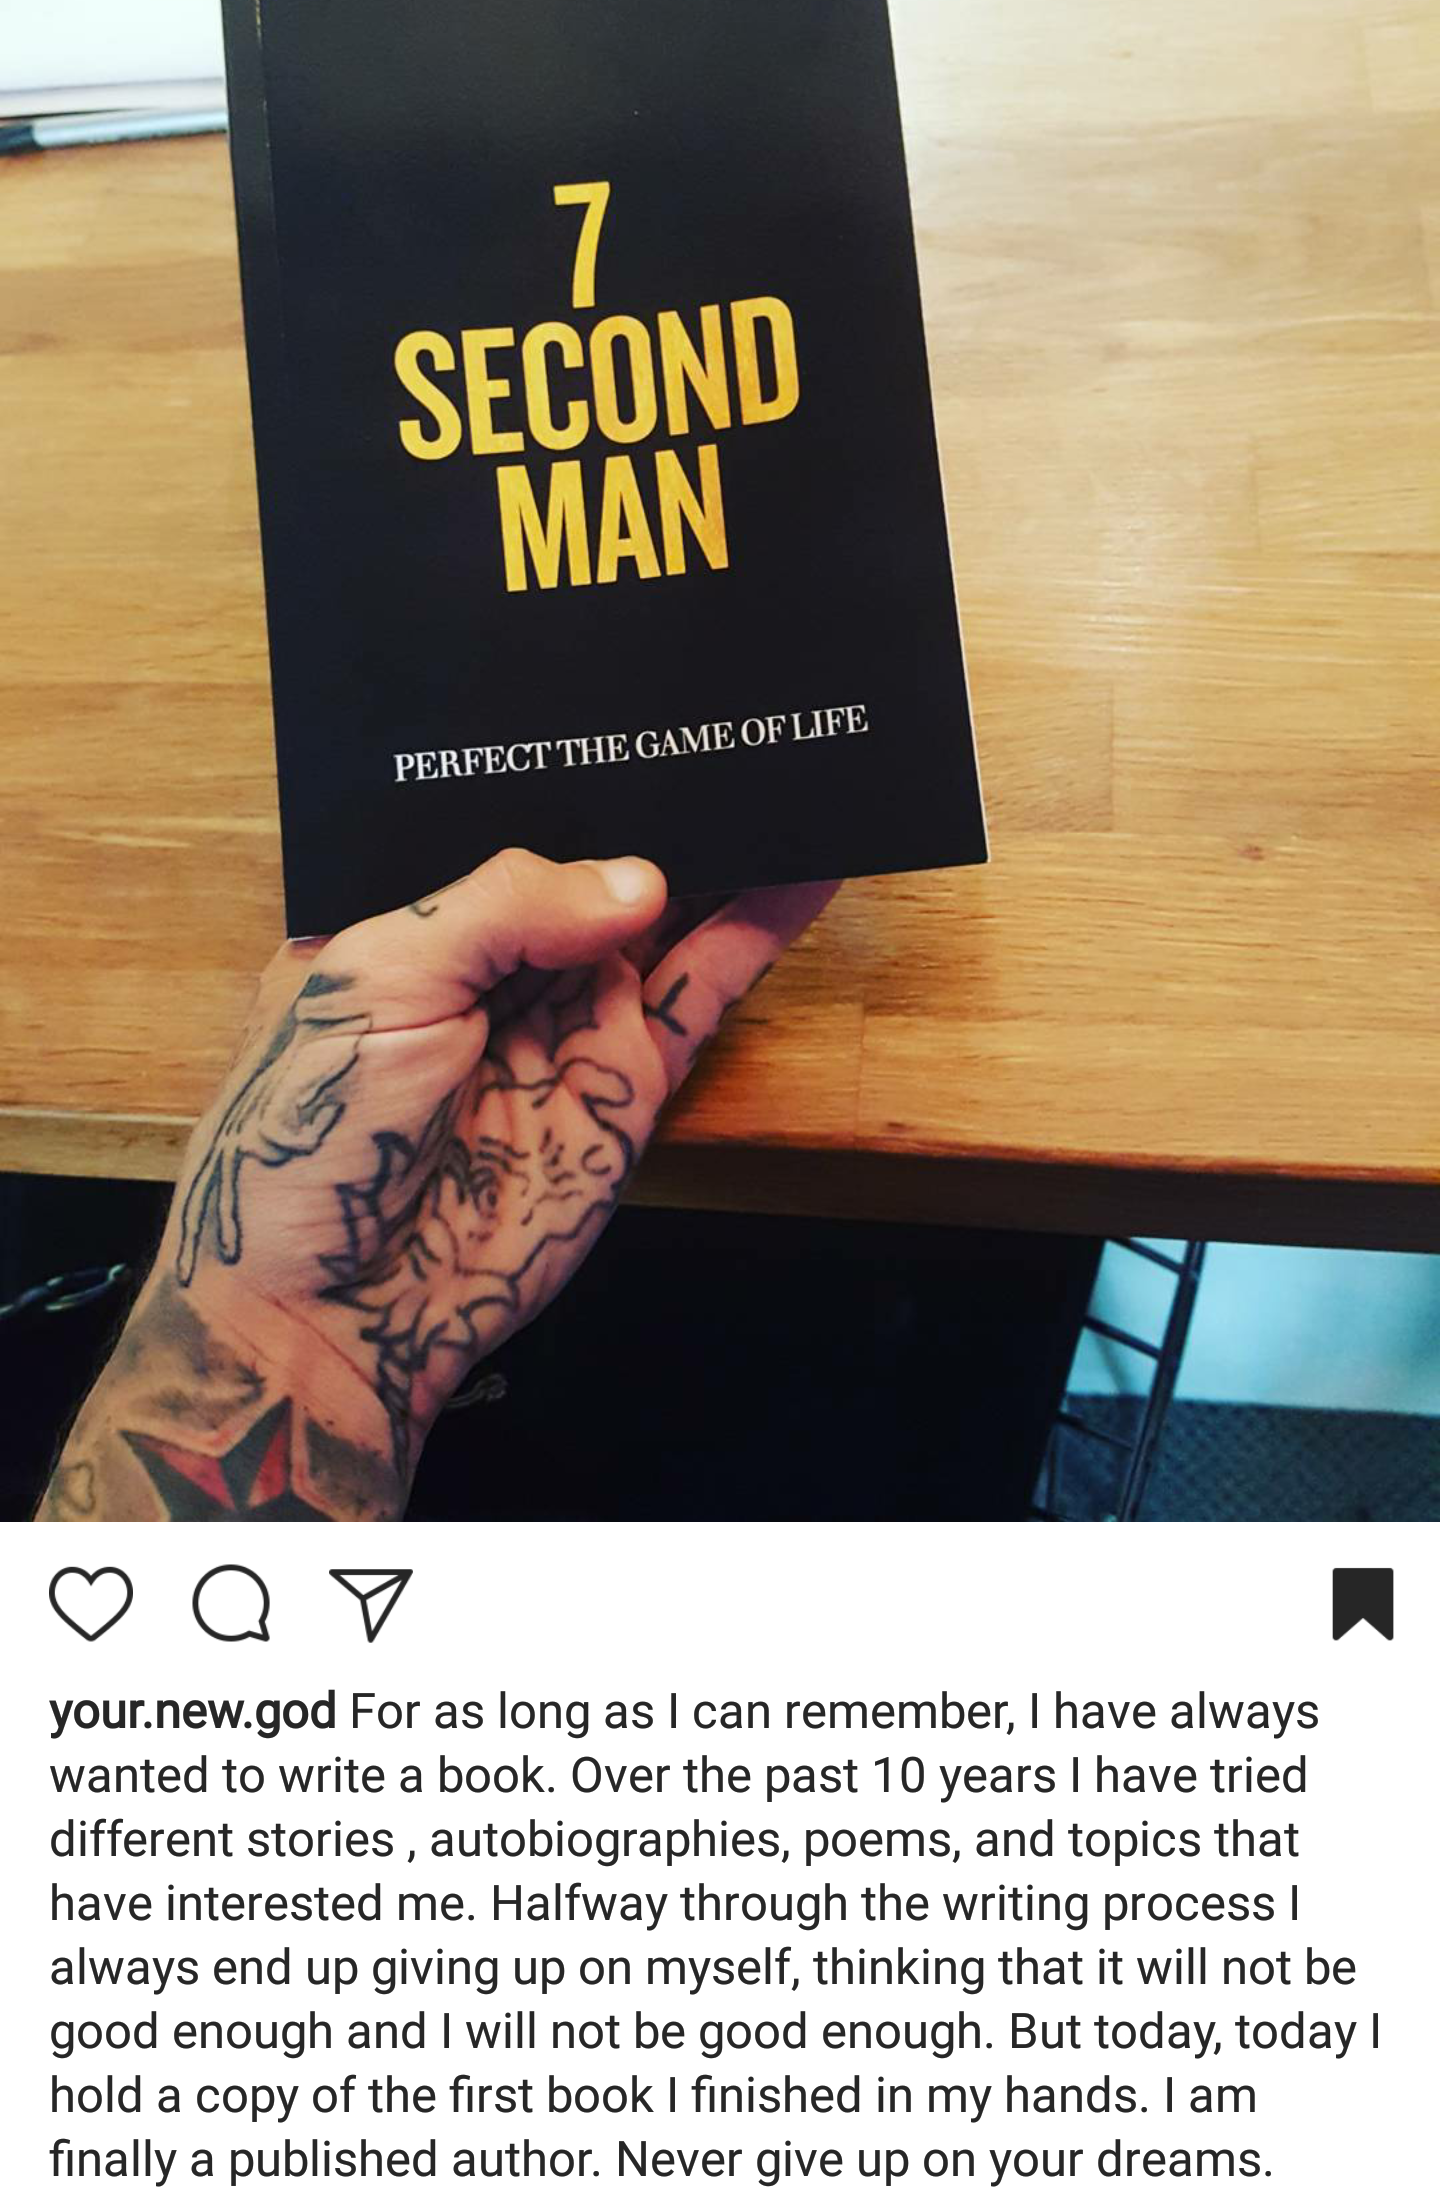 [Image] I published my first book this week